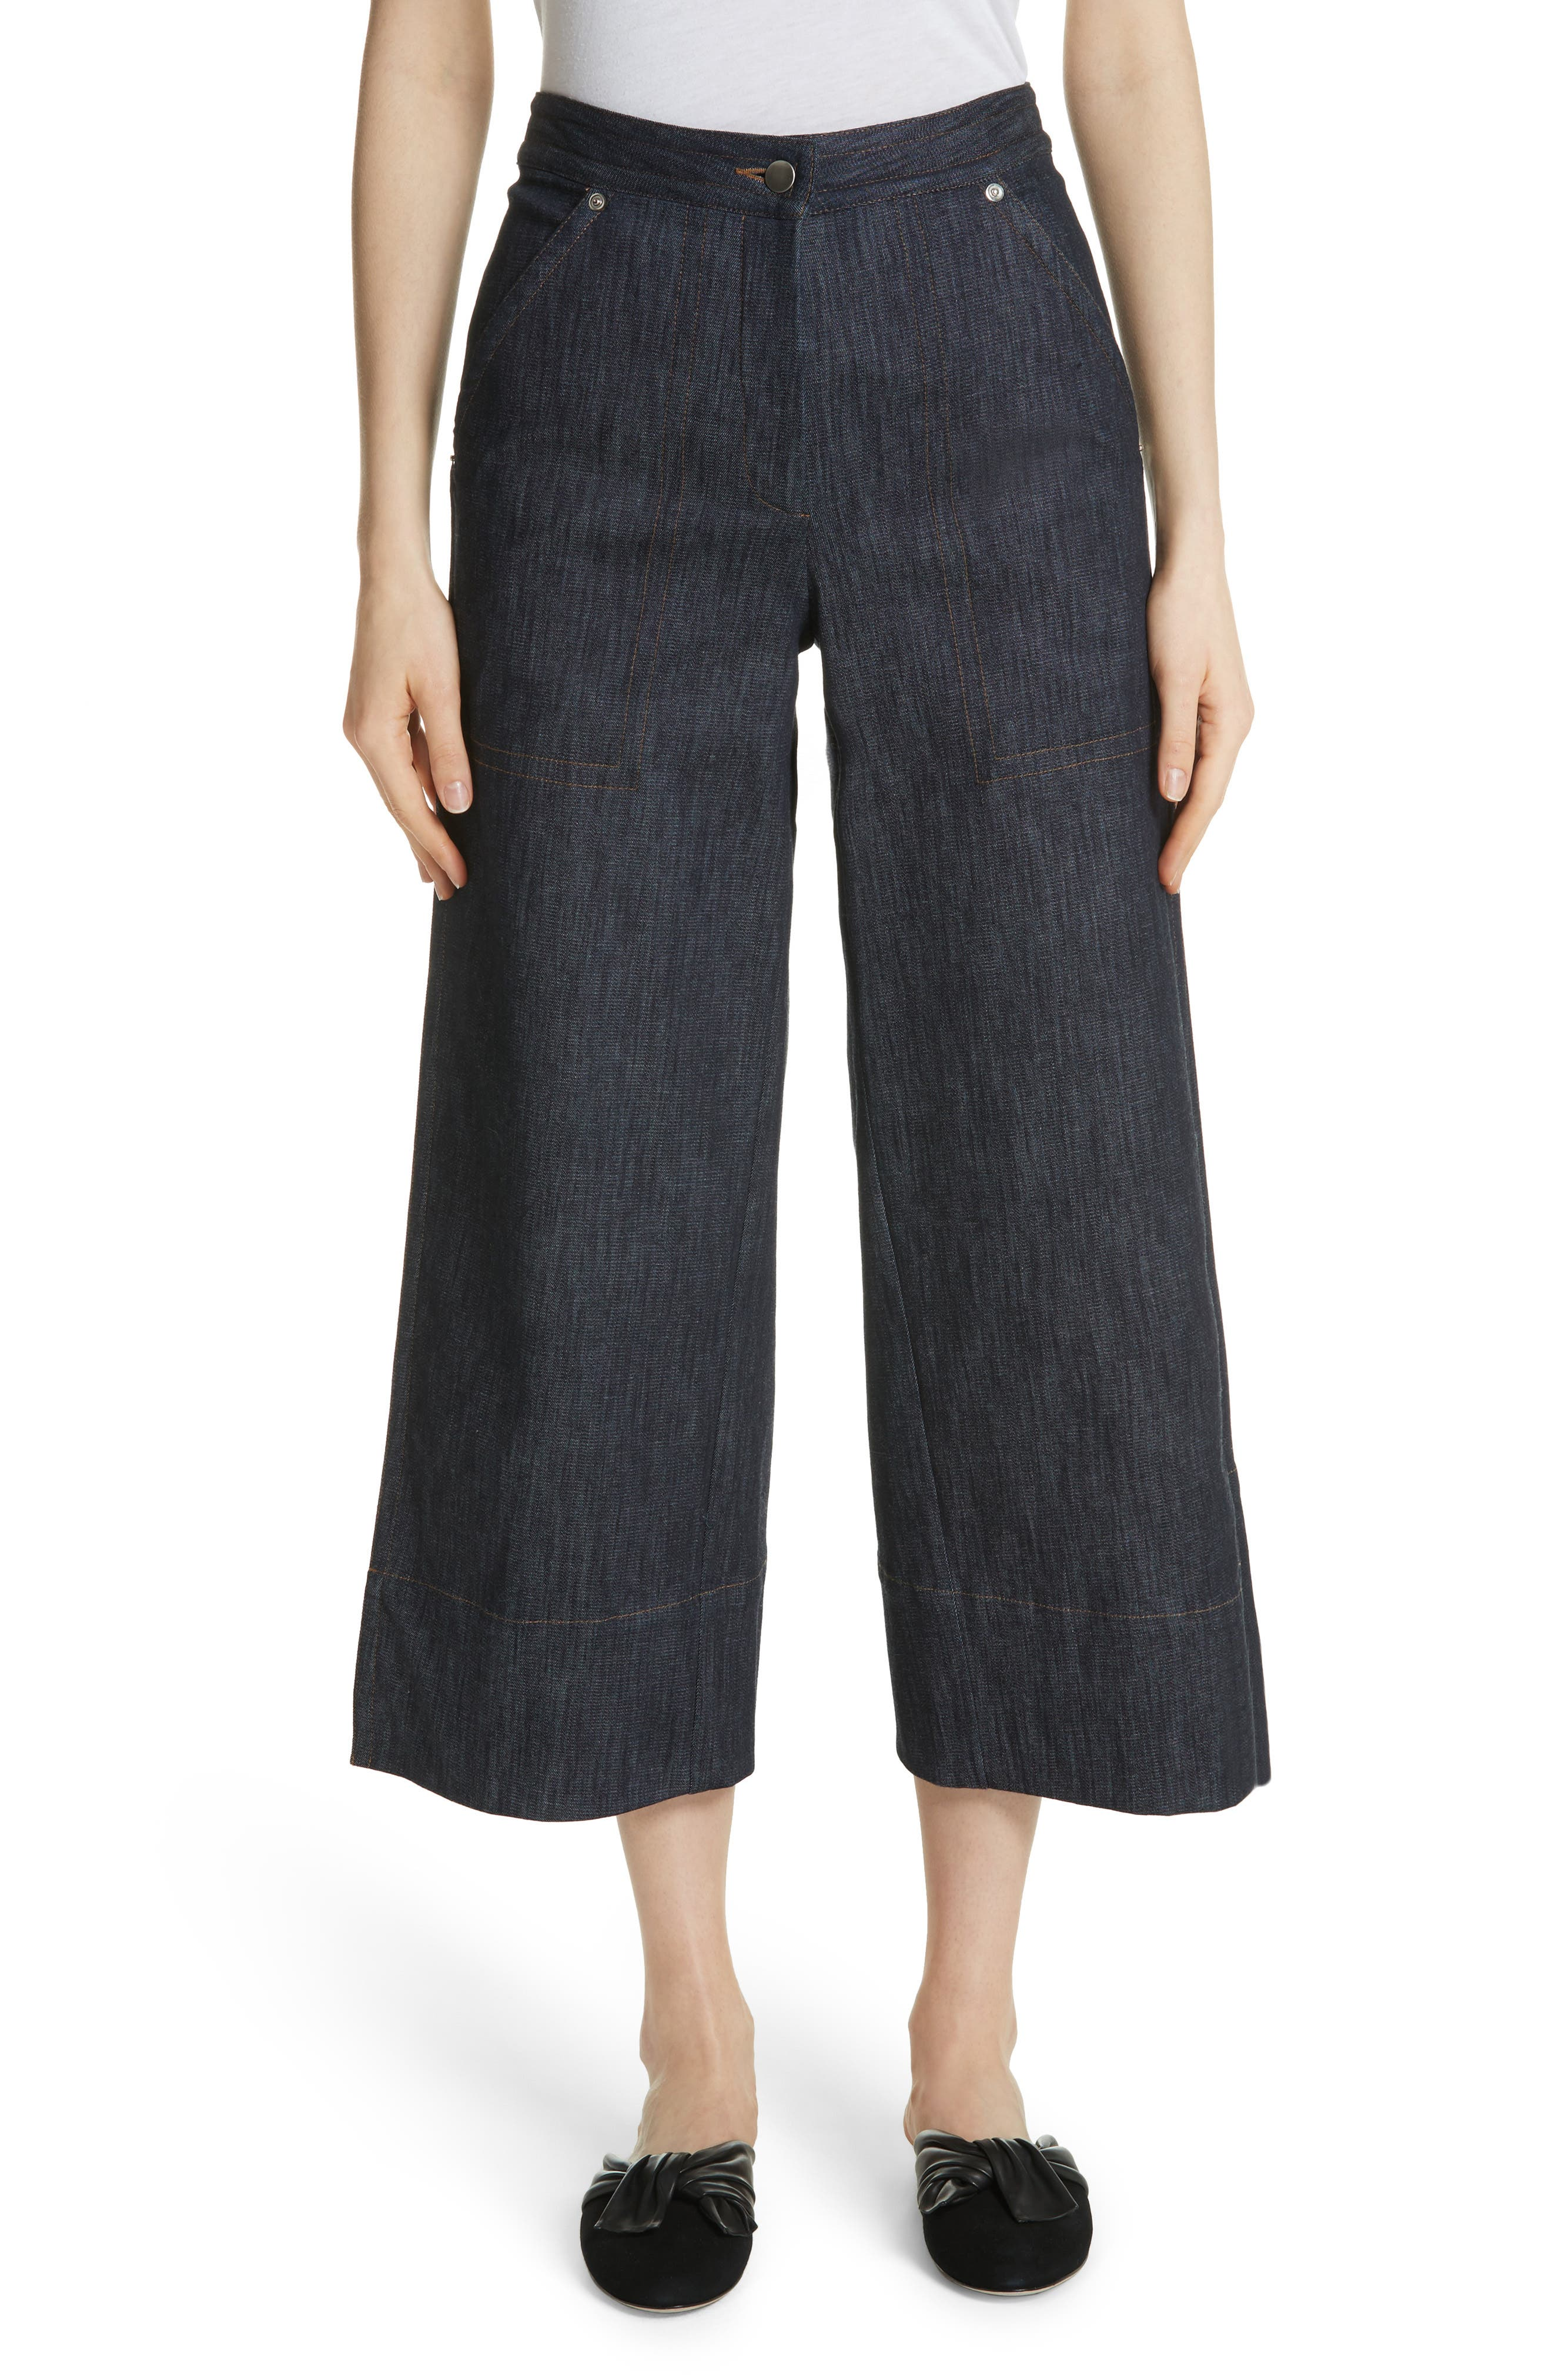 Alternate Image 1 Selected - Yigal Azrouël Panel Front Wide Leg Crop Jeans